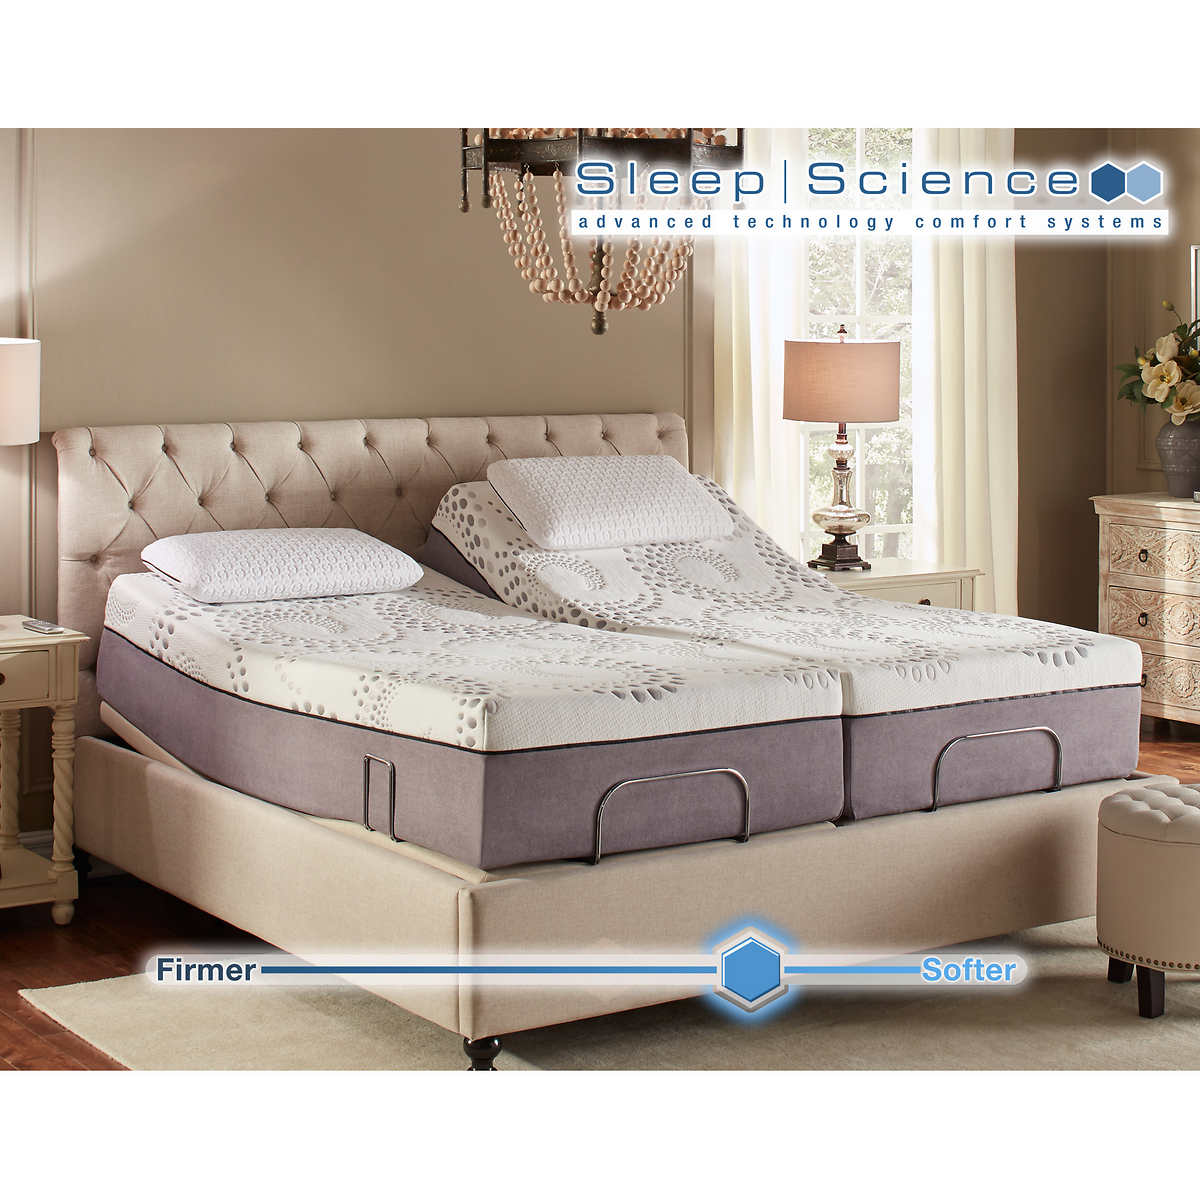 Sleep Science Ara 13 Split King Memory Foam Mattress With Adjule Base